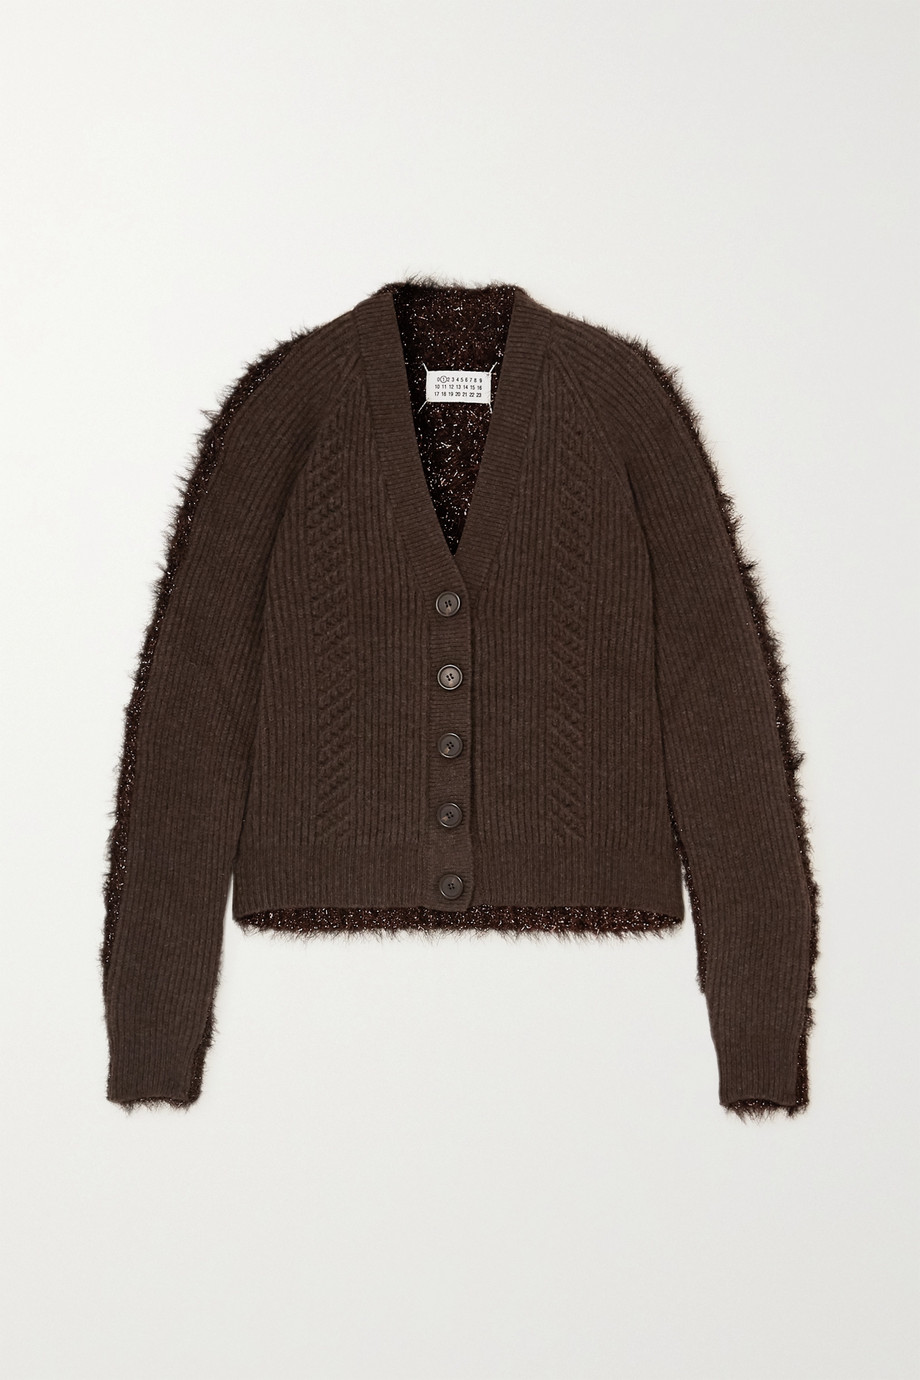 Maison Margiela Paneled ribbed wool and tinsel cardigan